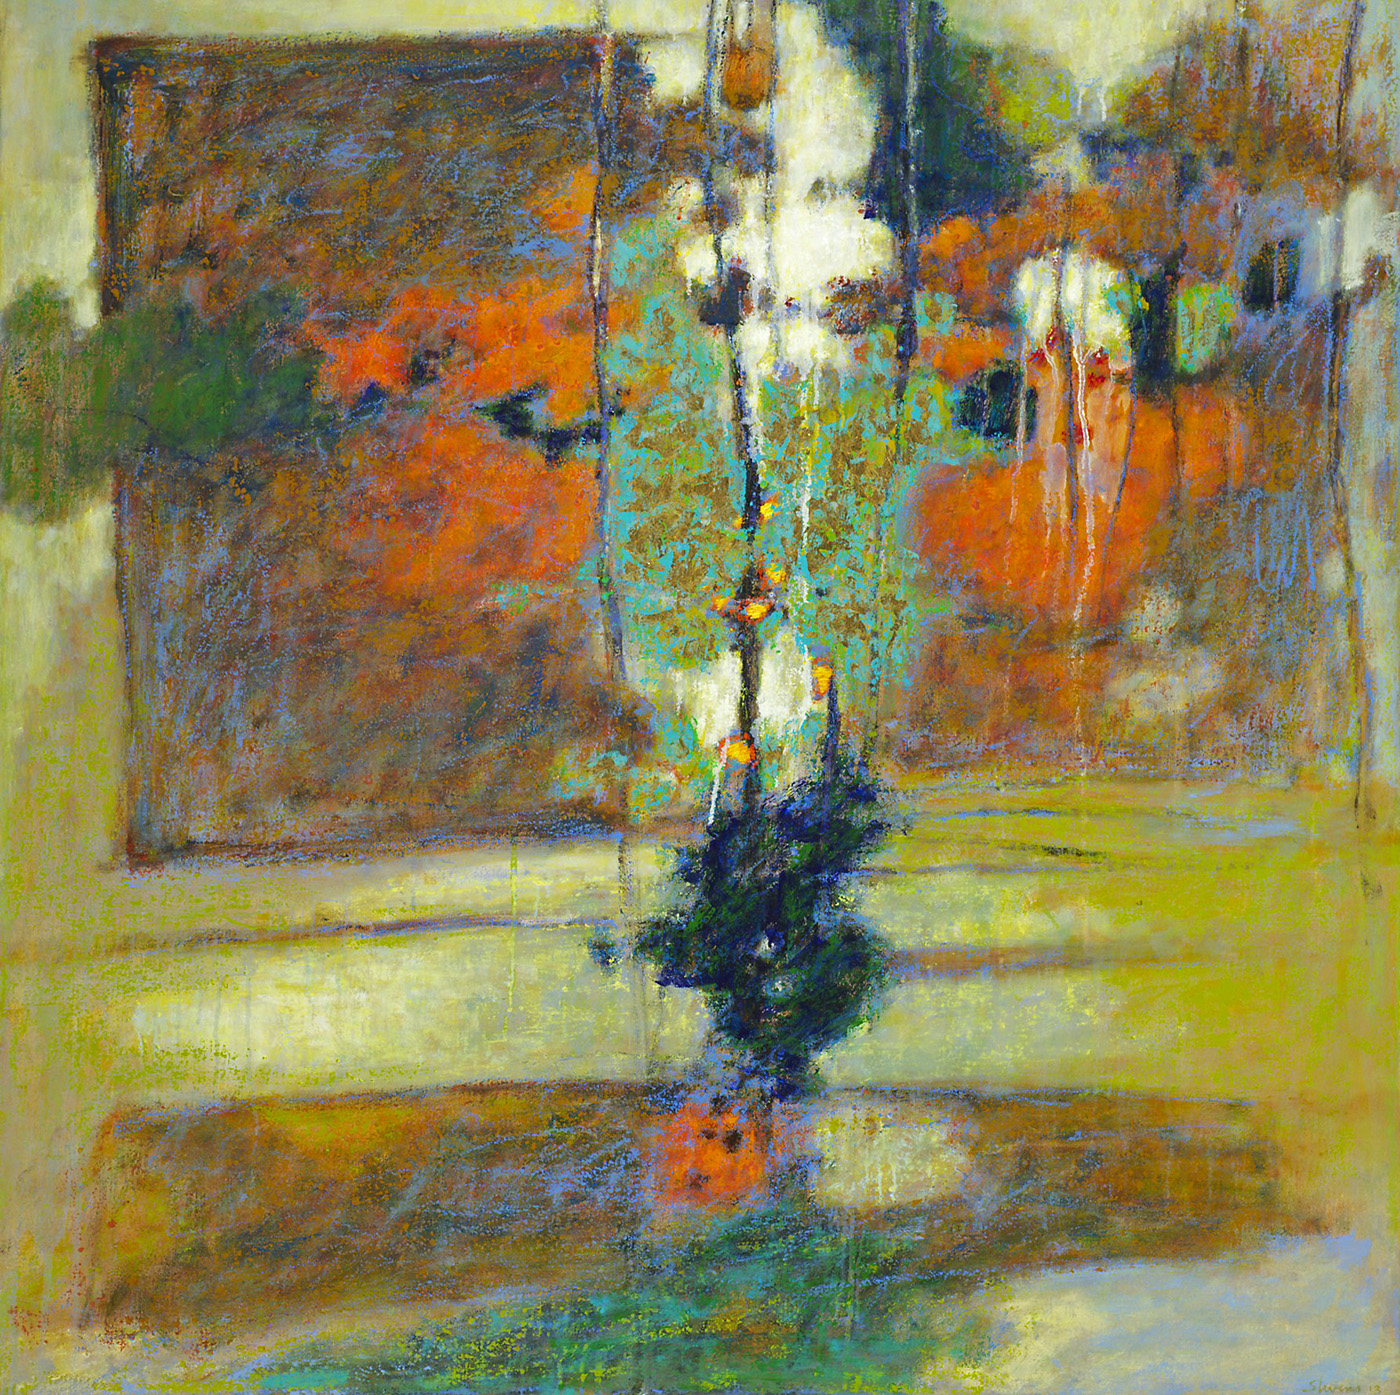 Unfolding   | oil on canvas | 40 x 36"